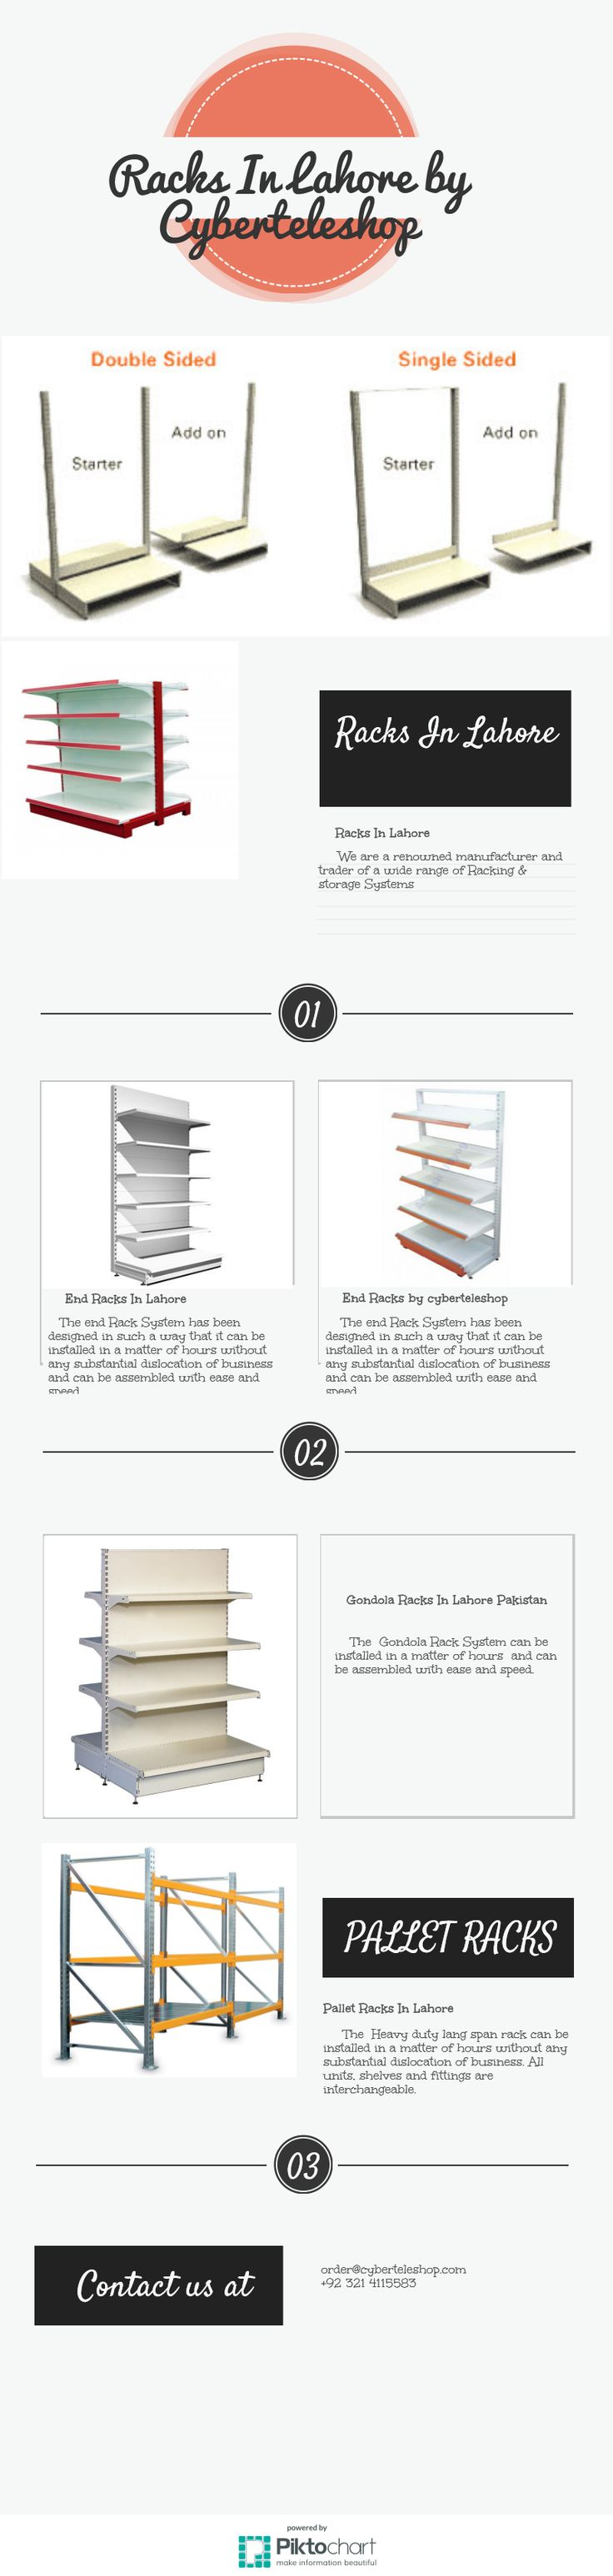 13 best images about Racks on Pinterest